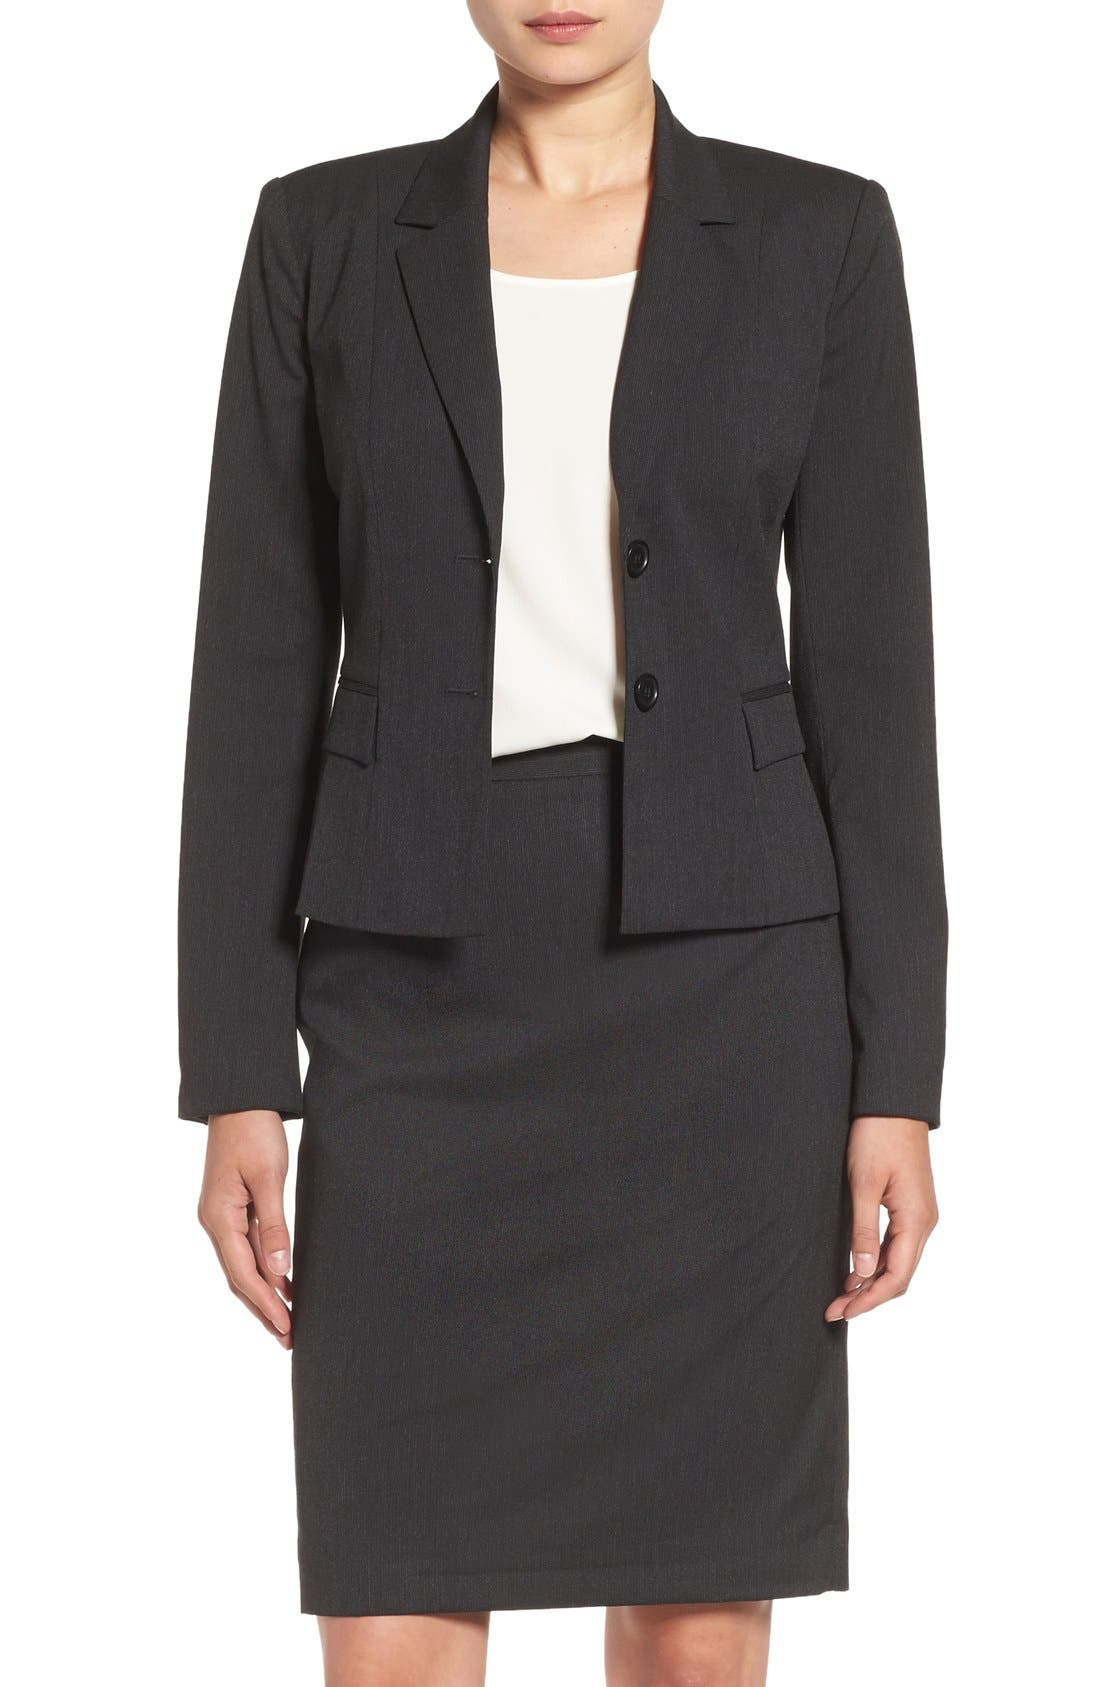 Main Image - Halogen® Mini Stripe Suit Jacket (Regular & Petite)